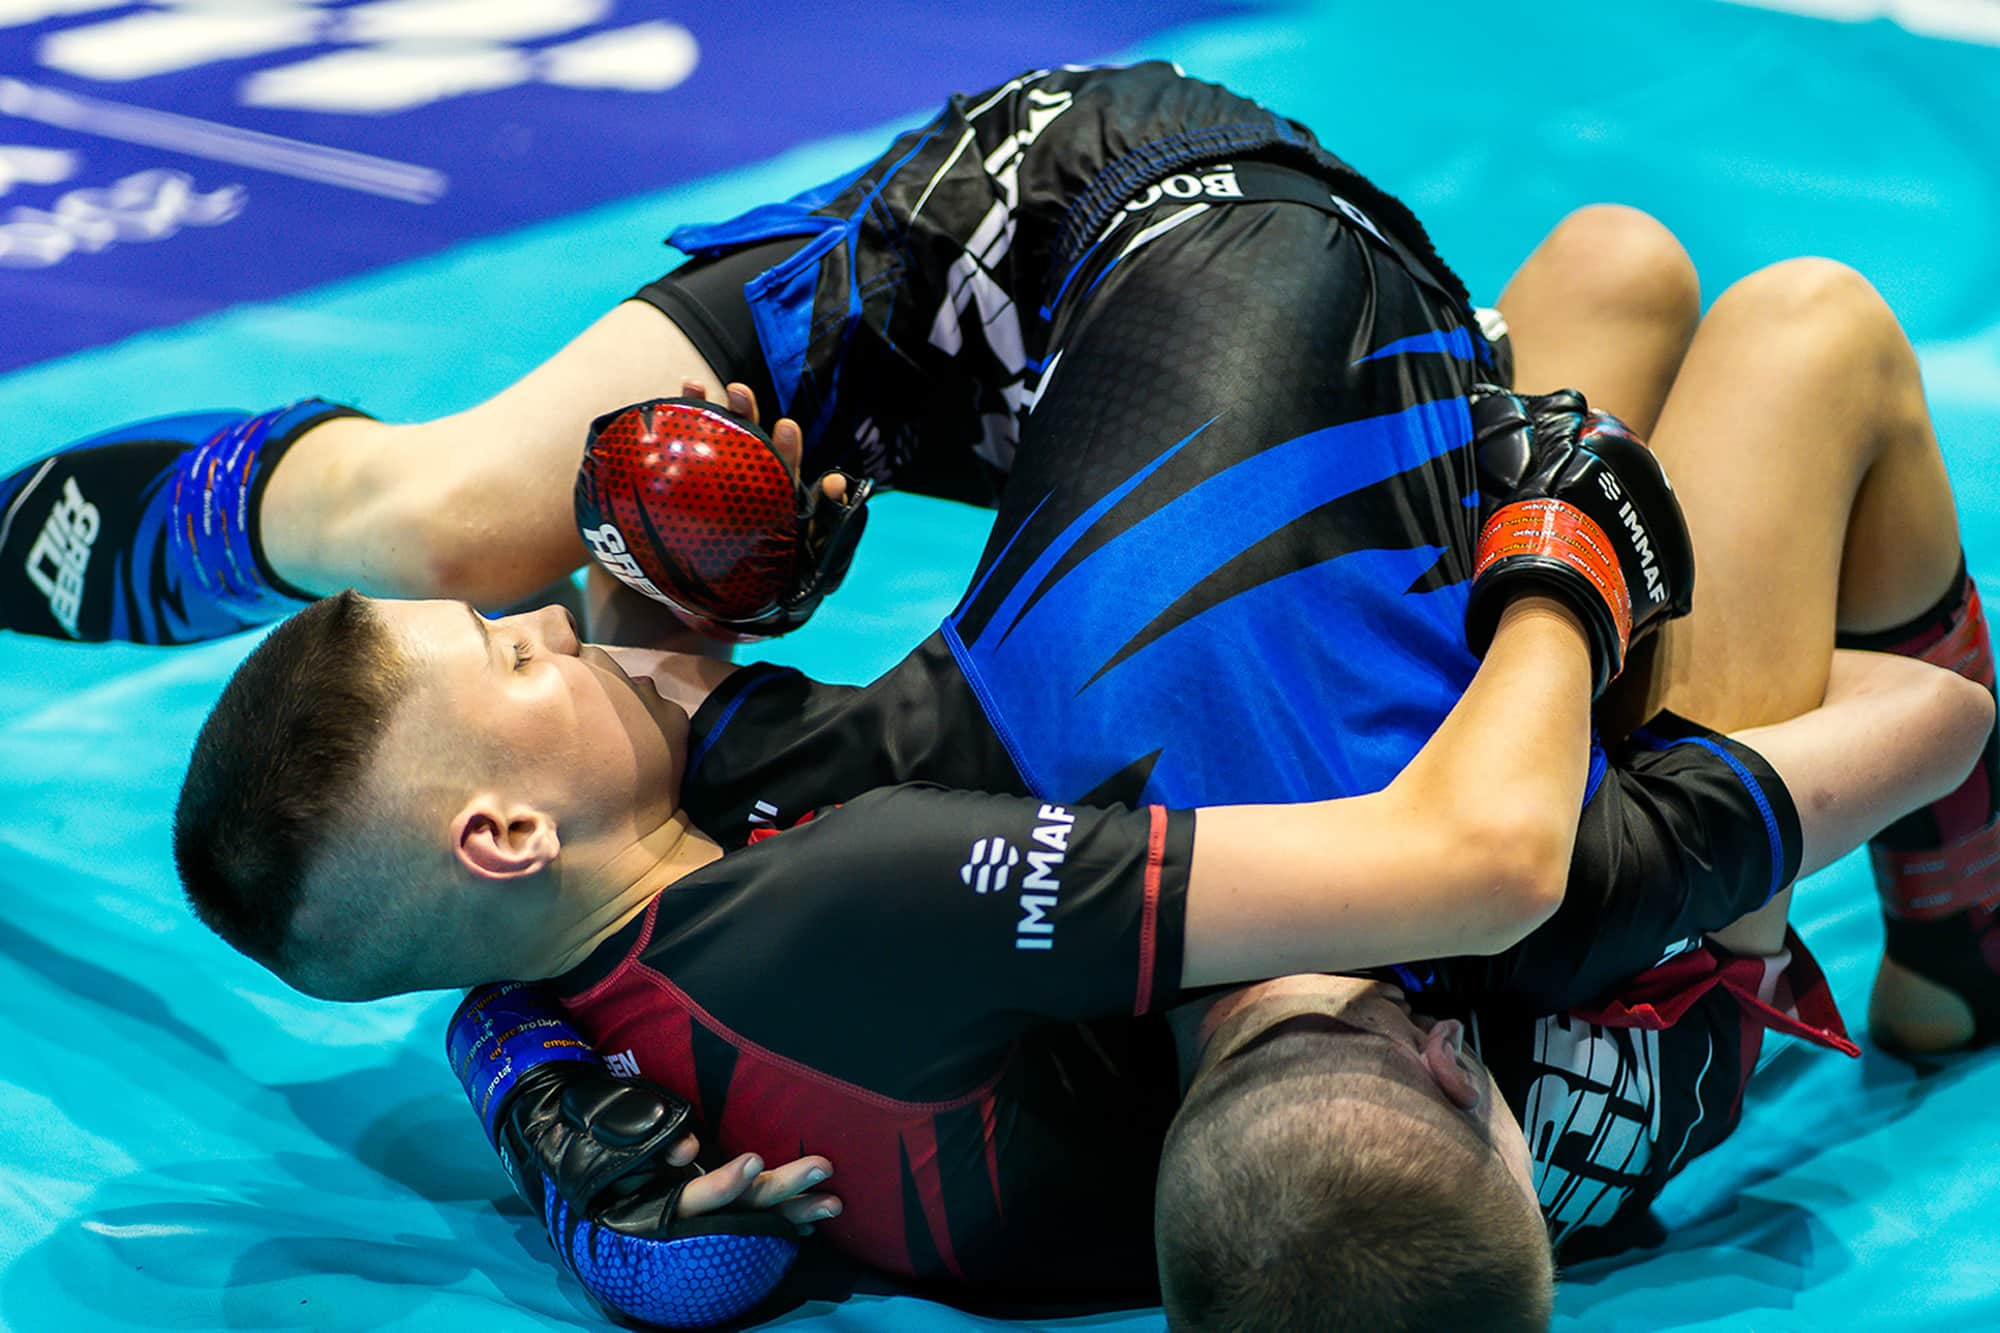 IMMAF Gradings mandatory for Youth Championships in 2021 & beyond